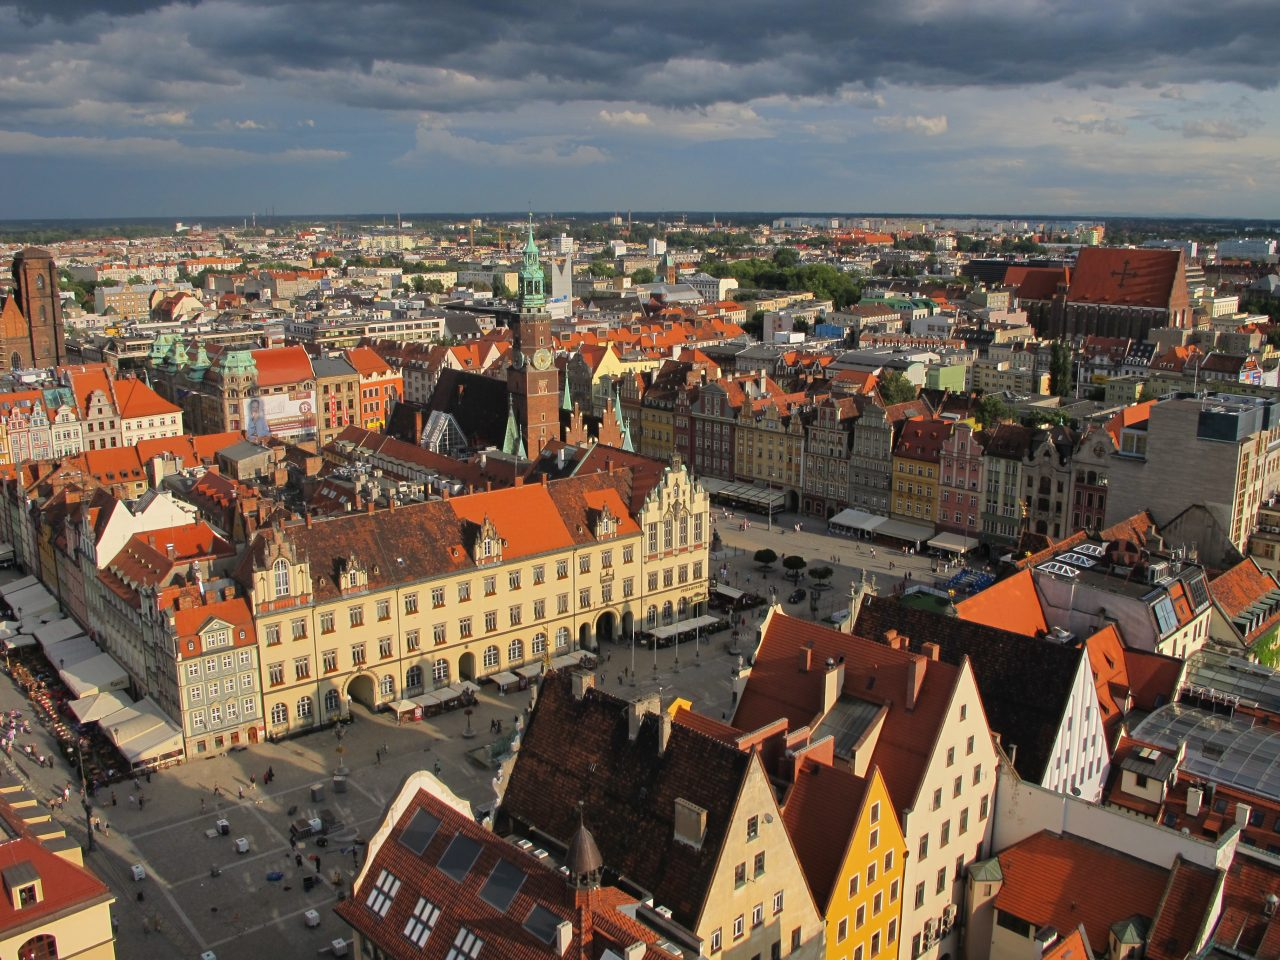 Poland is one of the largest countries in Europe by both area and population, and a fabulous destination for the budget traveller. Yet, it remains a relatively untravelled destination by students.